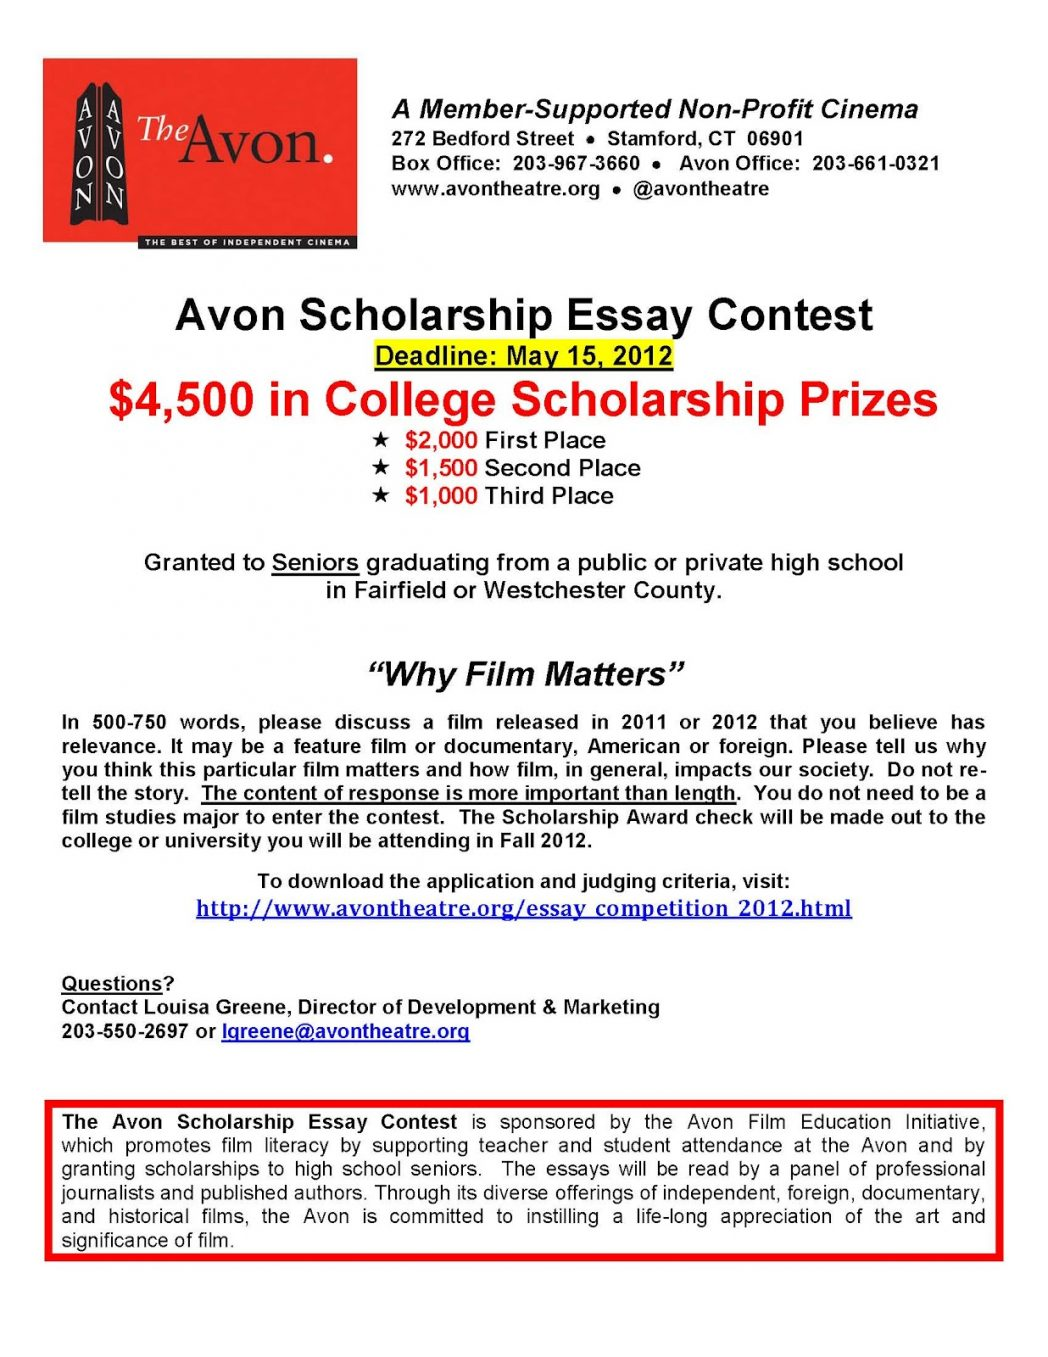 004 No Essay College Scholarship Prowler Avonscholarshipessaycontest2012 Easy Scholarships For High School Students 1048x1357 Awesome Free Required Hispanic Full